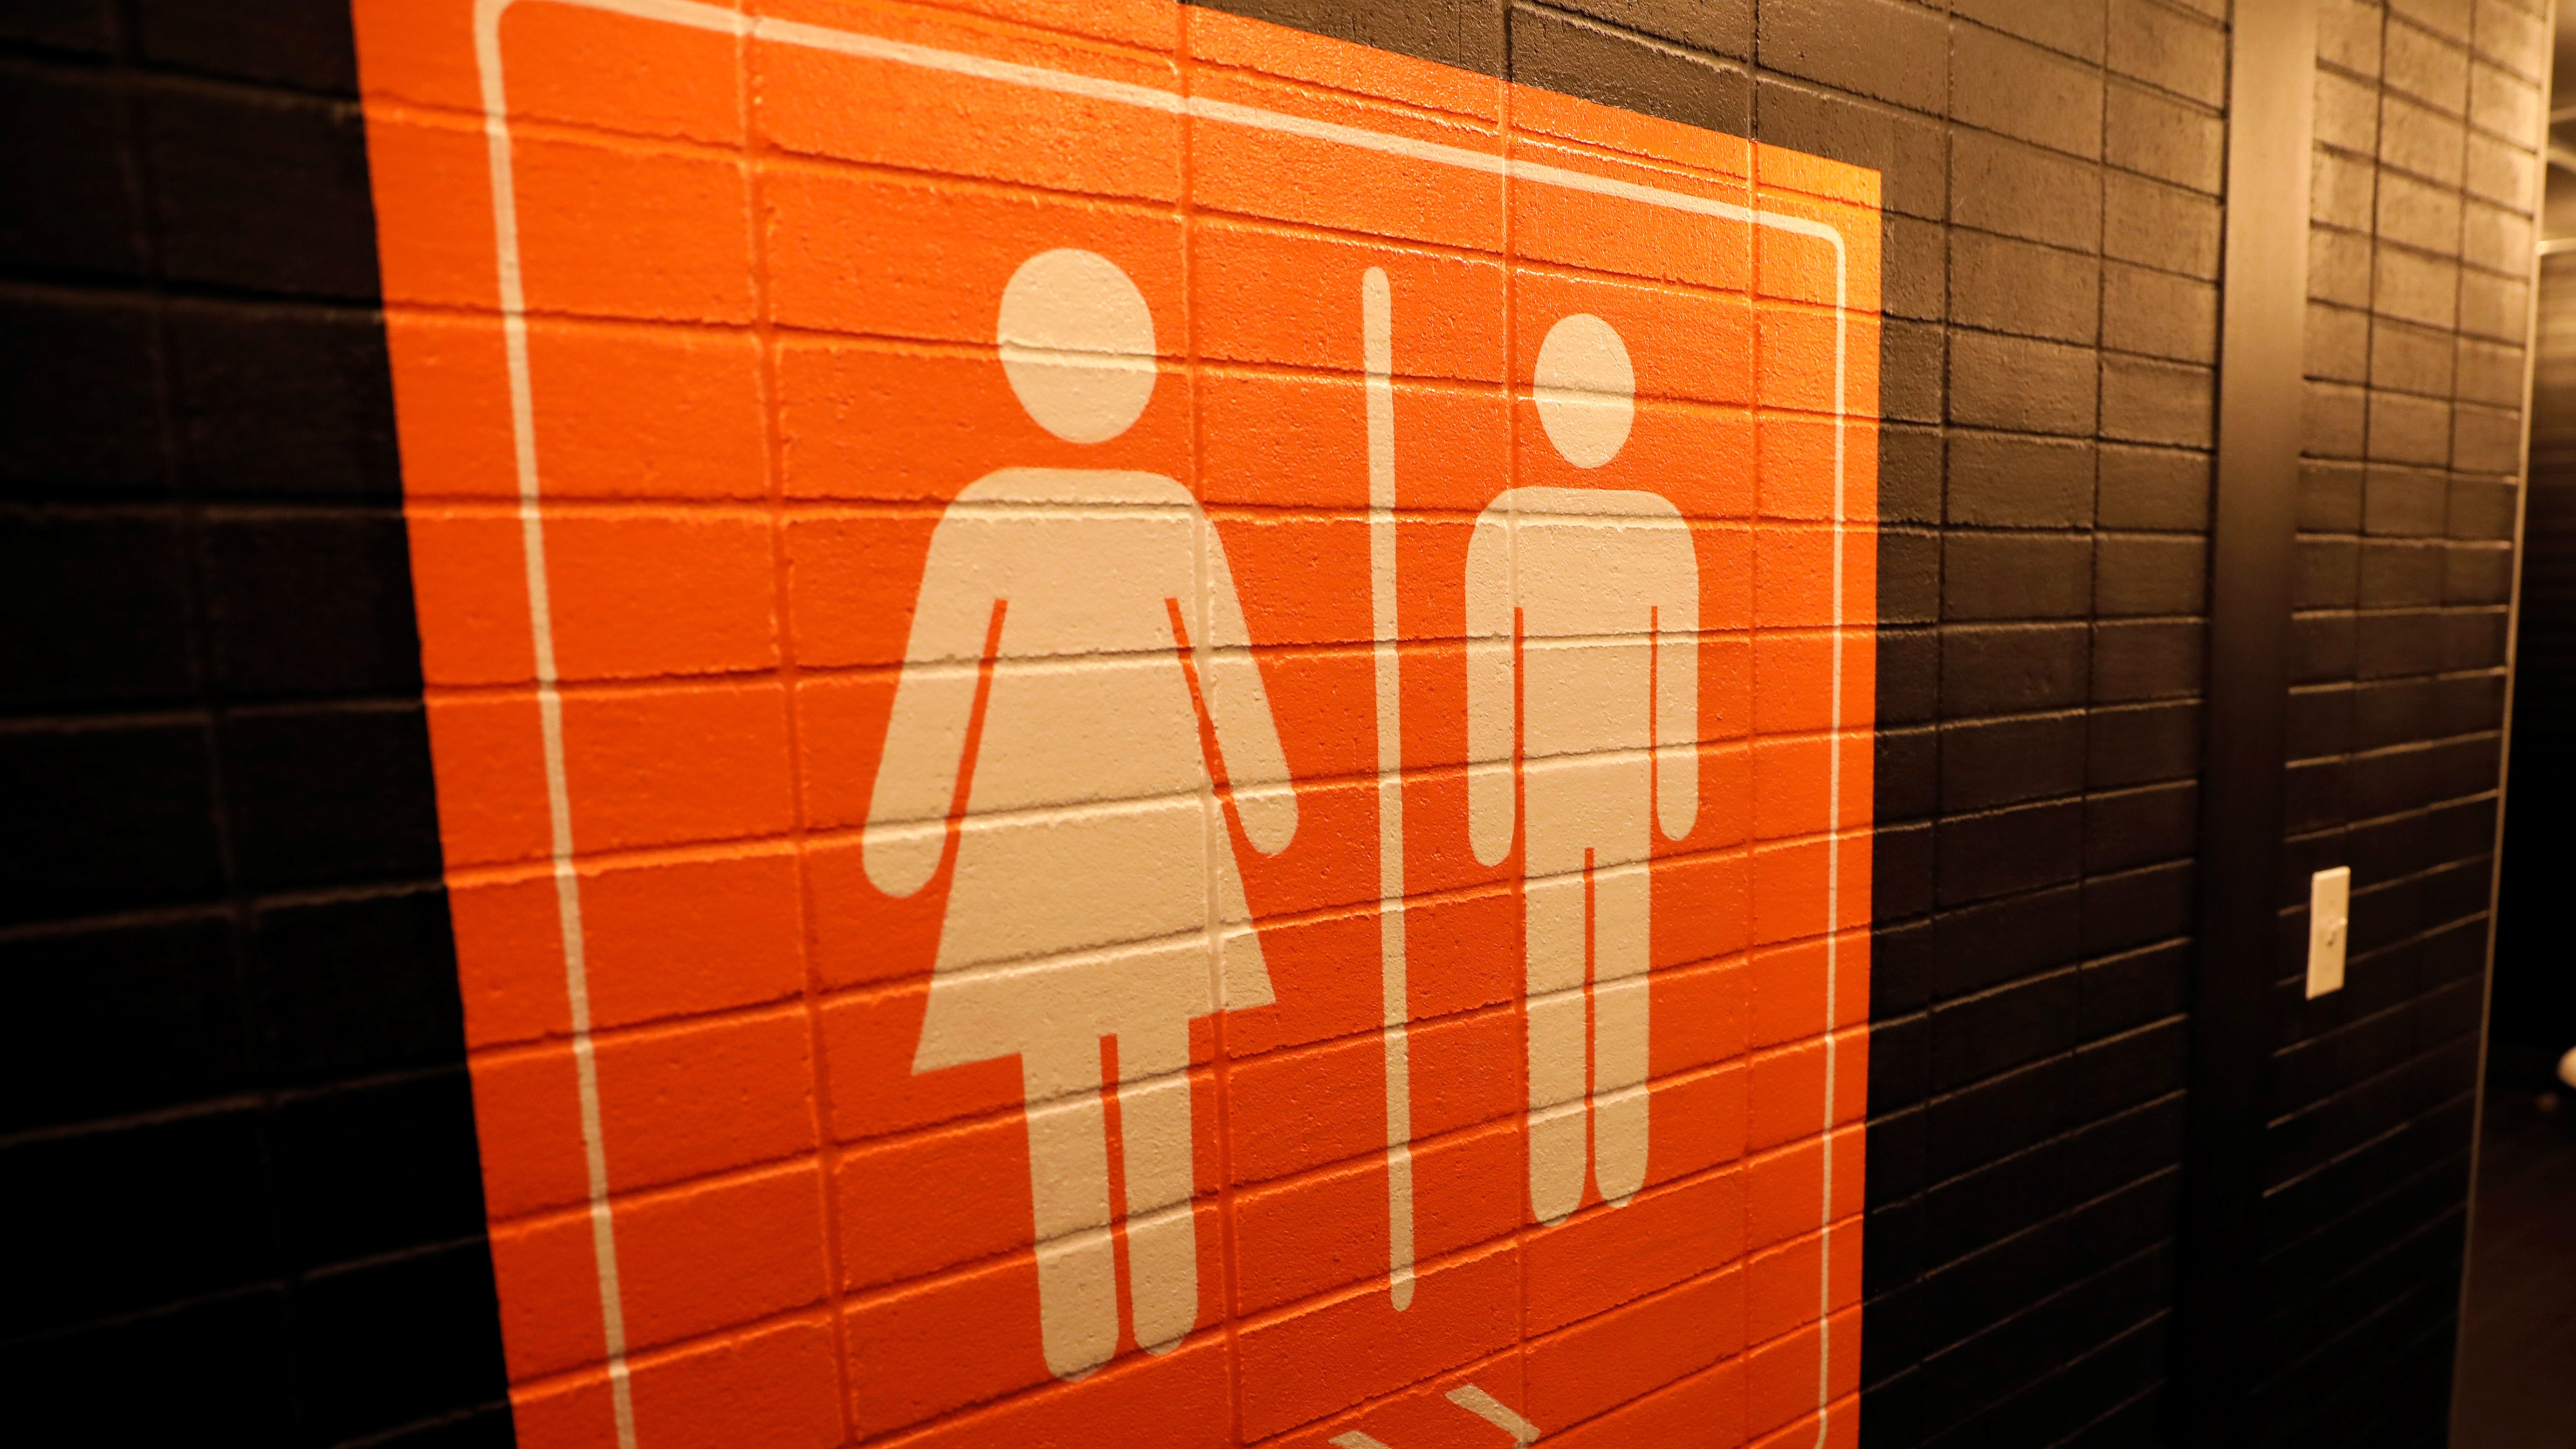 A sign is seen pointing to a gender neutral restroom in New York City